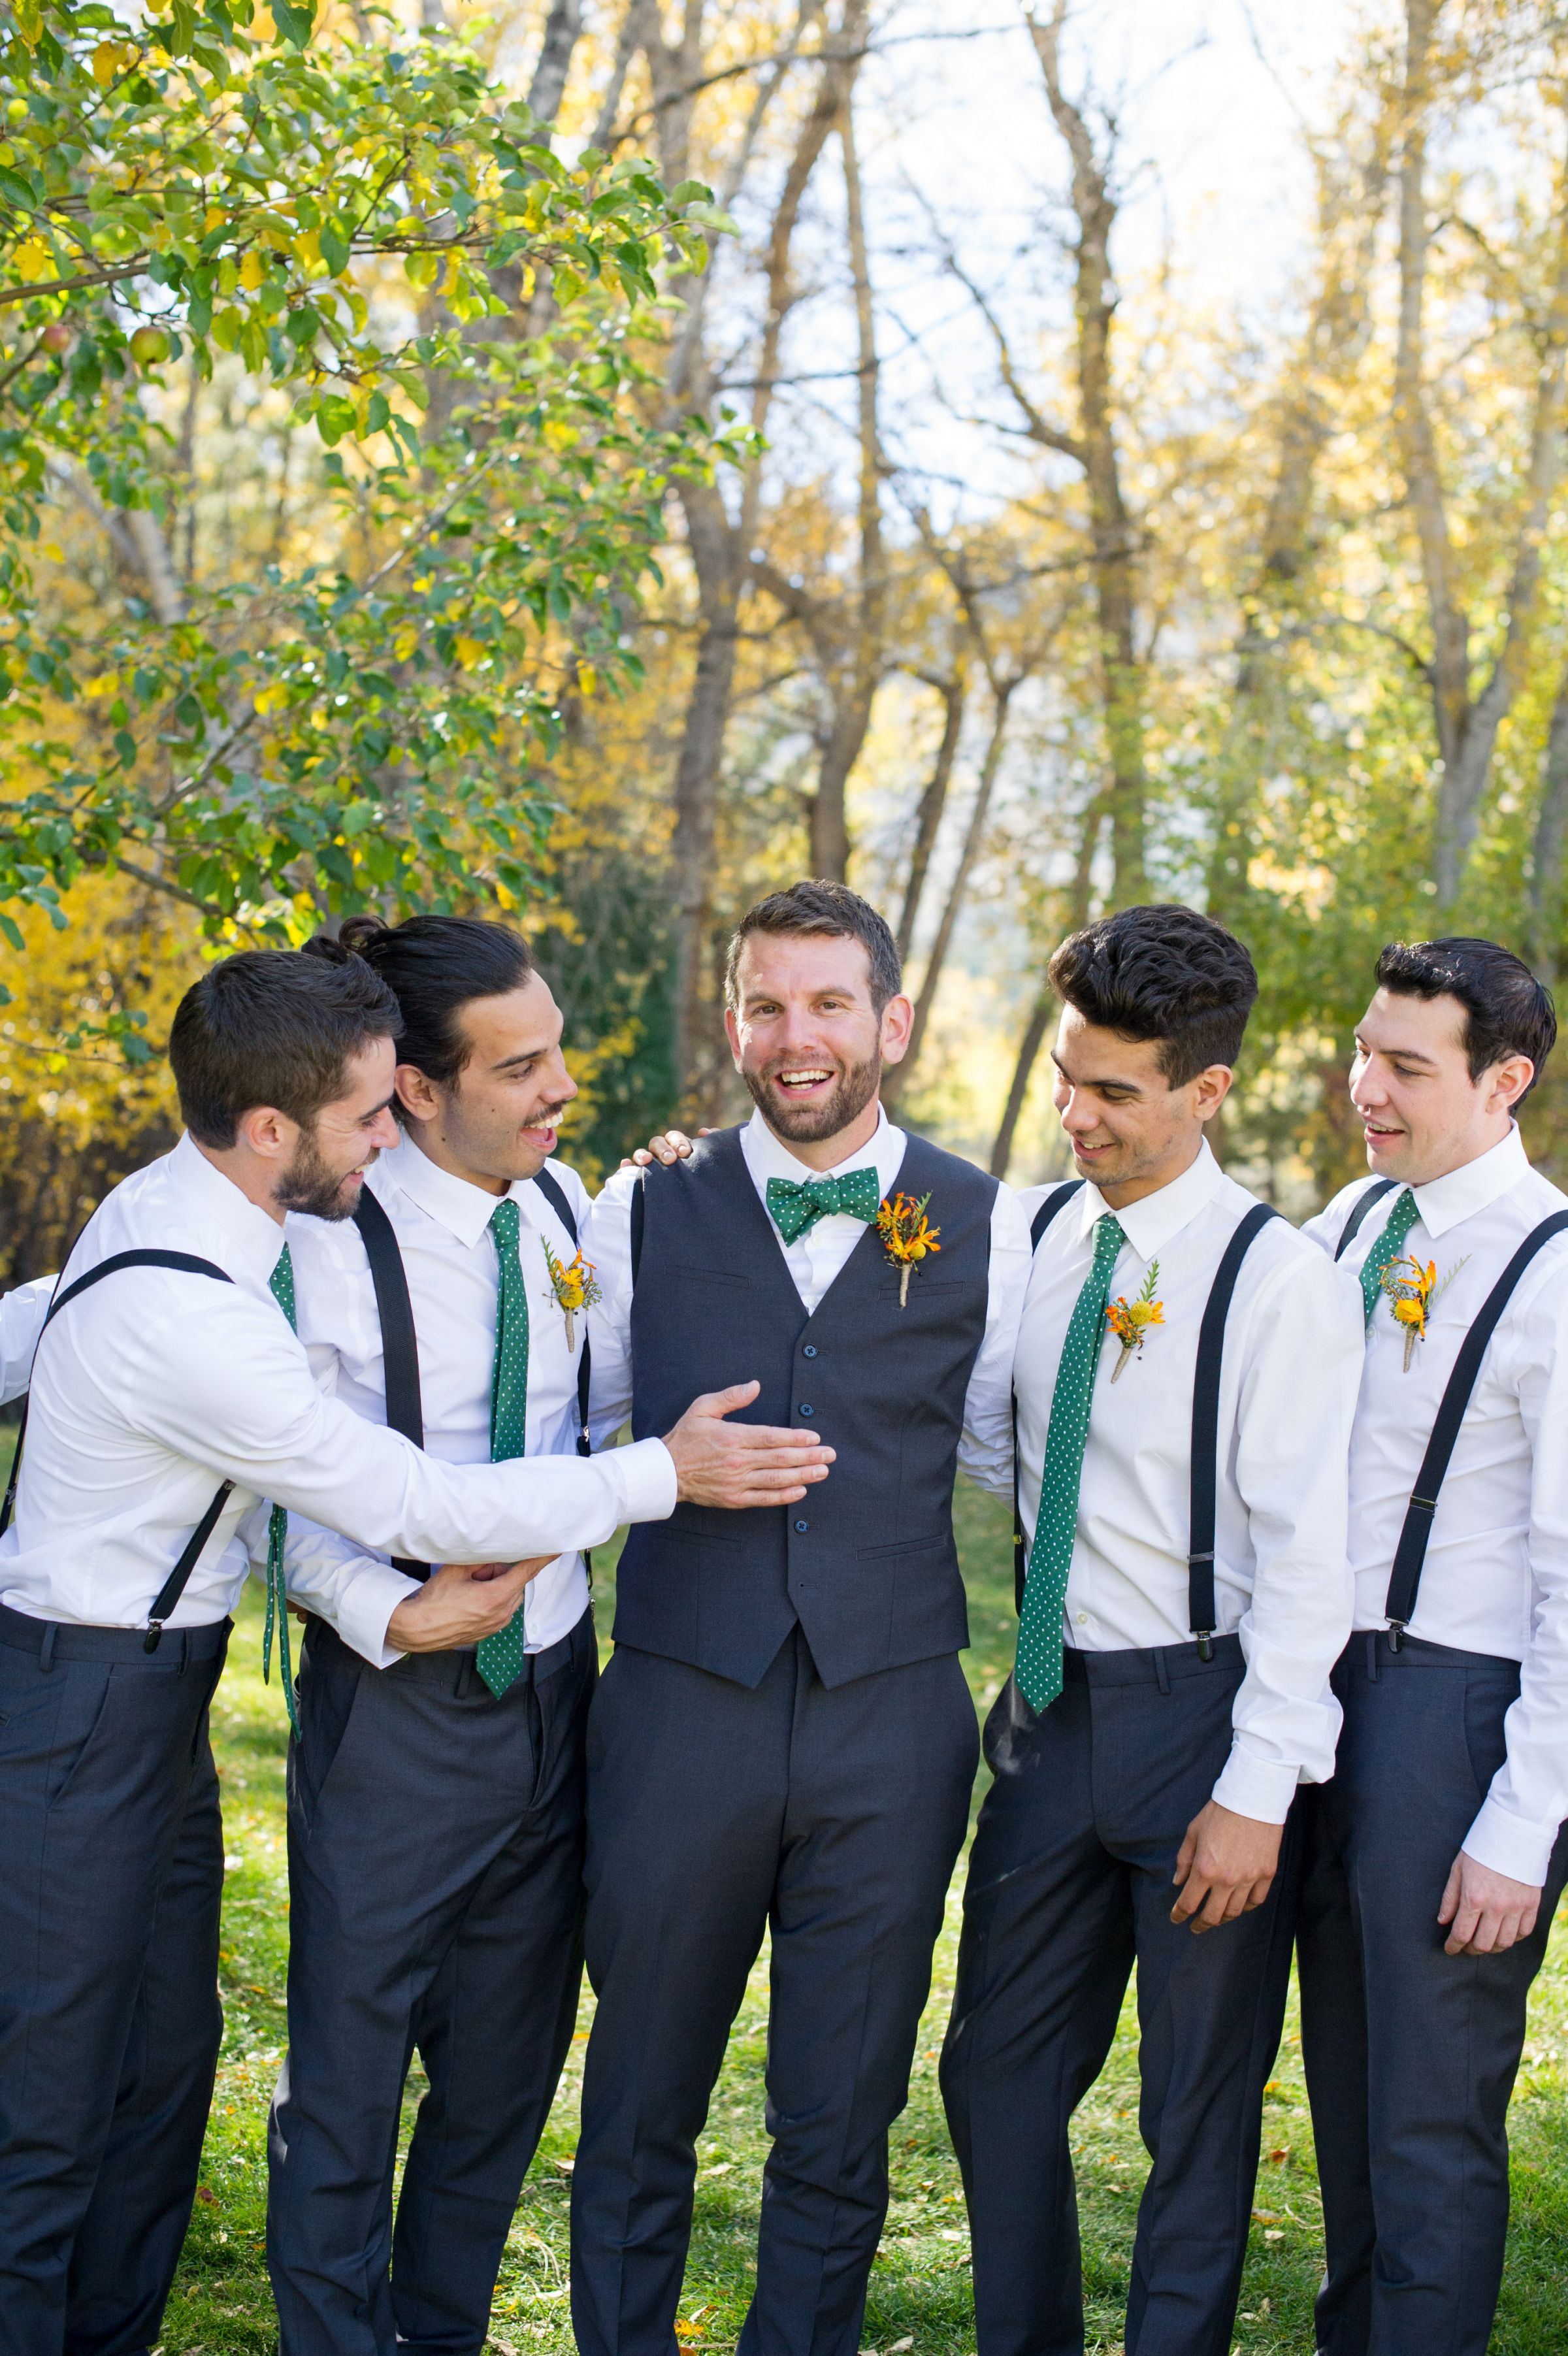 Groomsmen with green ties